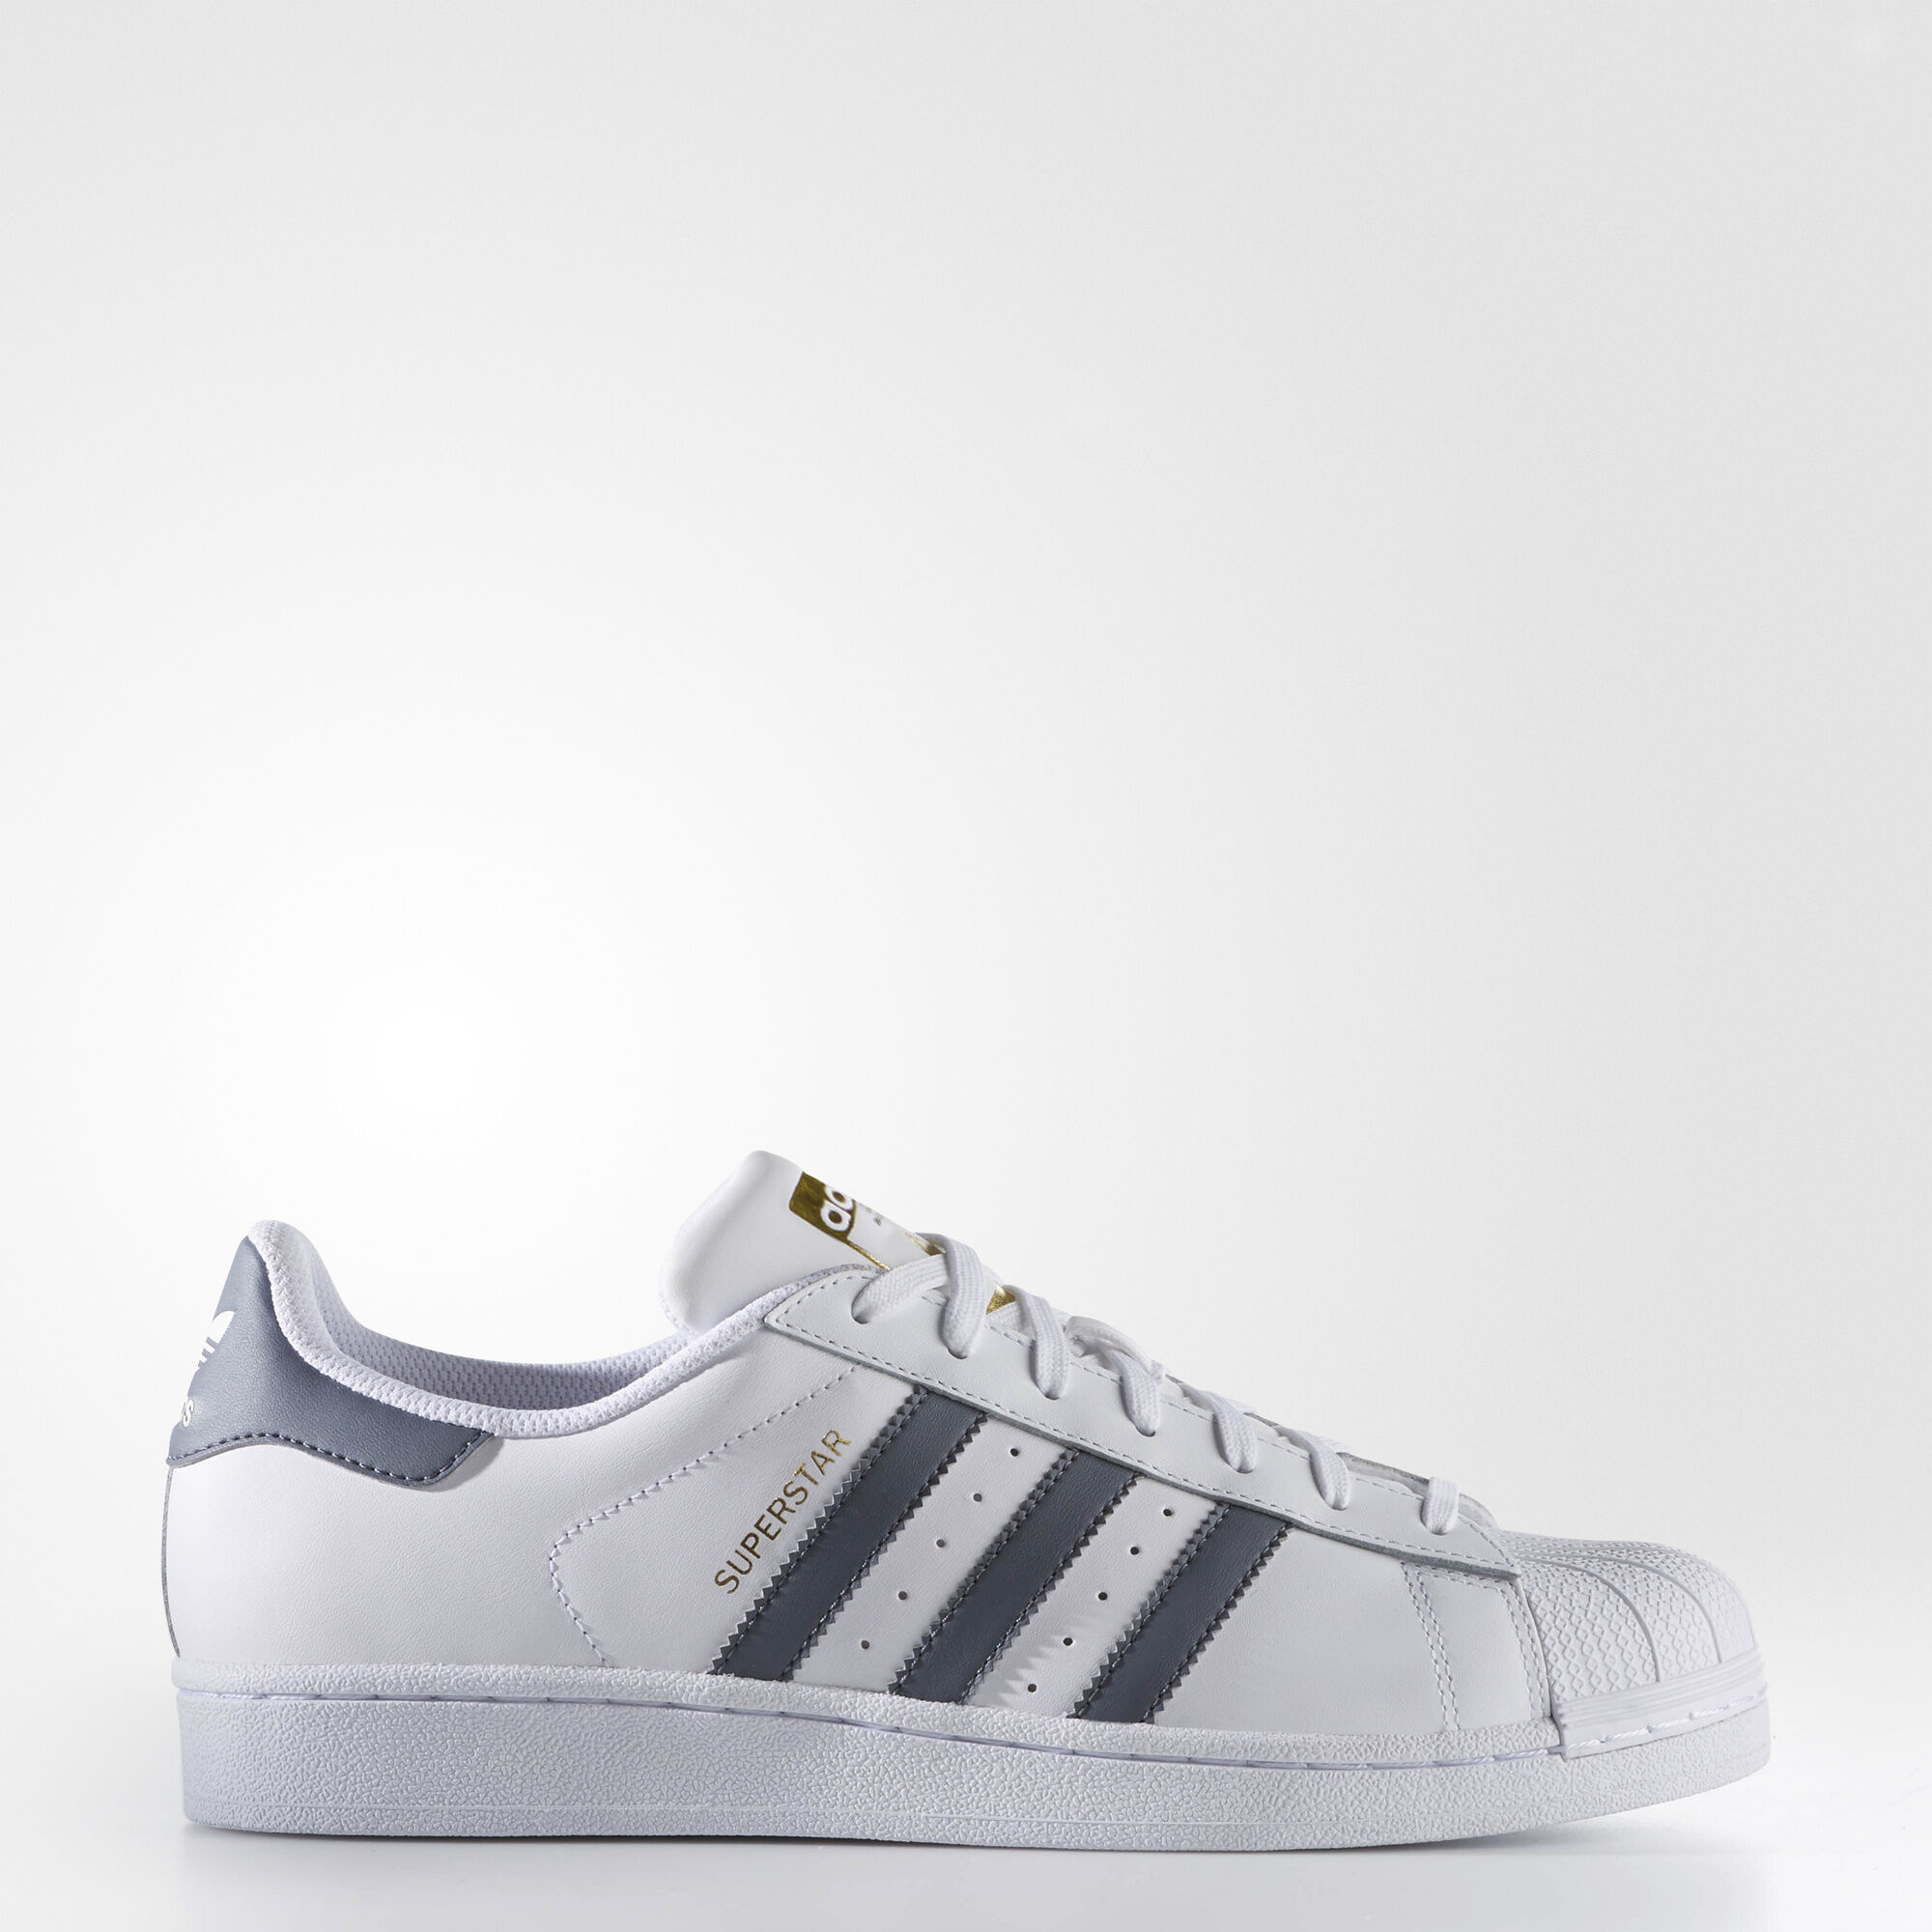 Adidas shirt design your own - Adidas Superstar Shoes Running White Ftw Onix Metallic Gold By3714